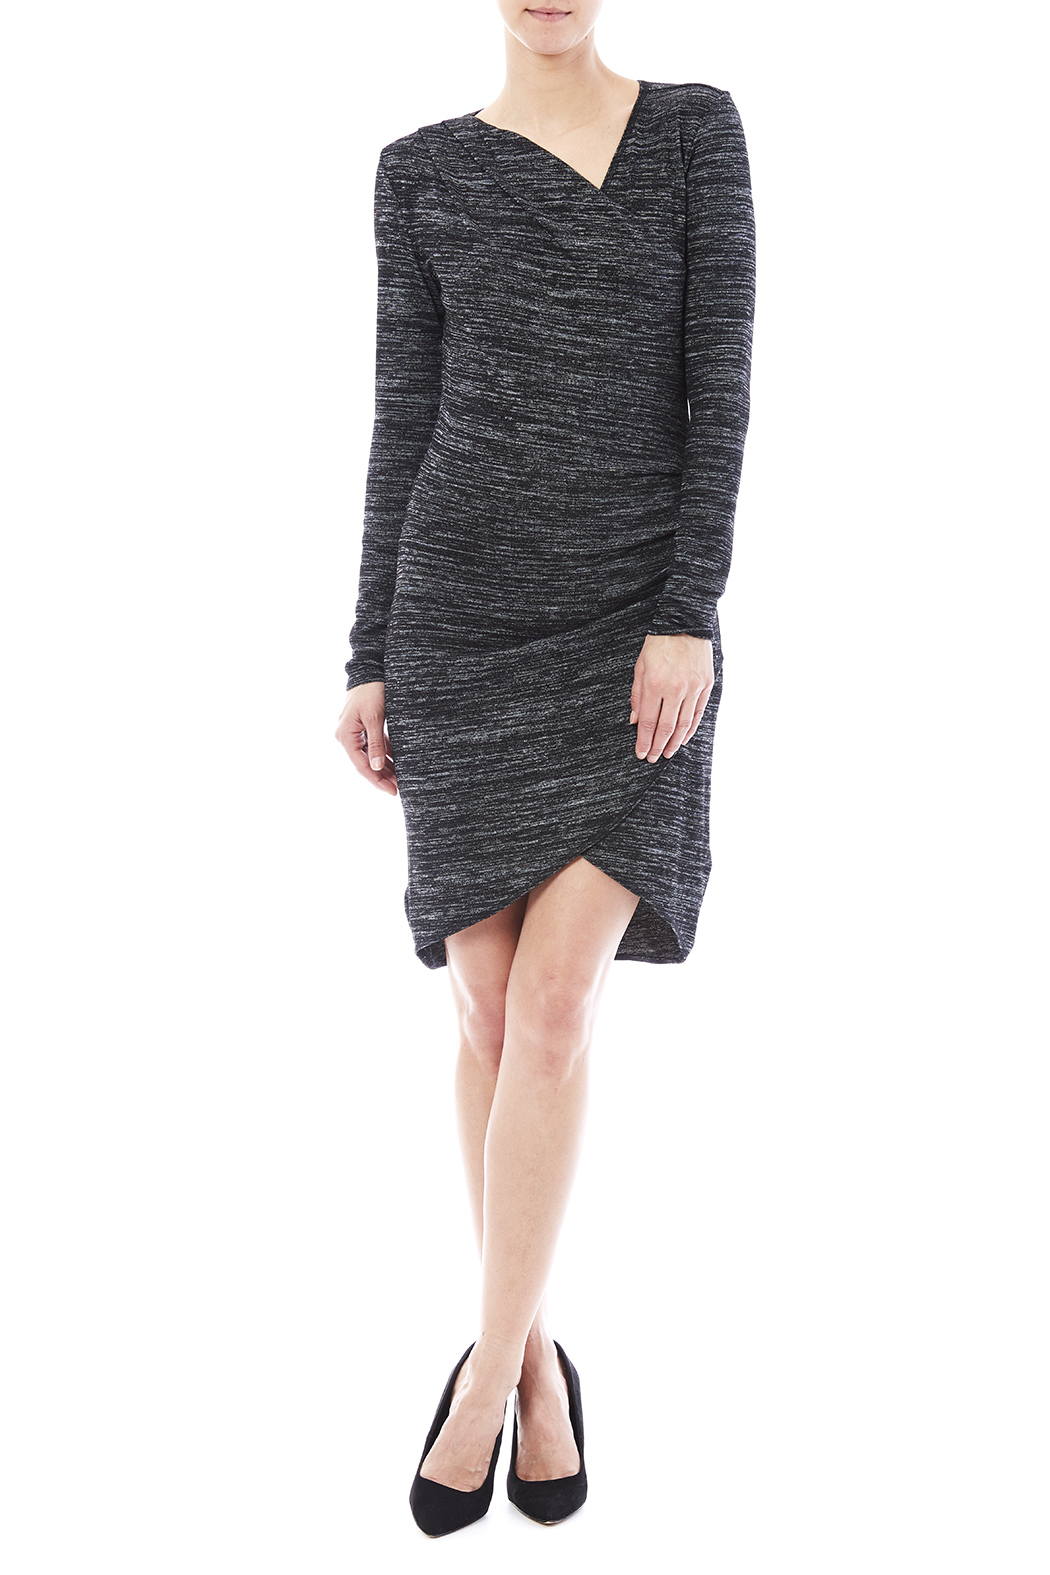 RD Style Wrap Knit Dress - Front Full Image